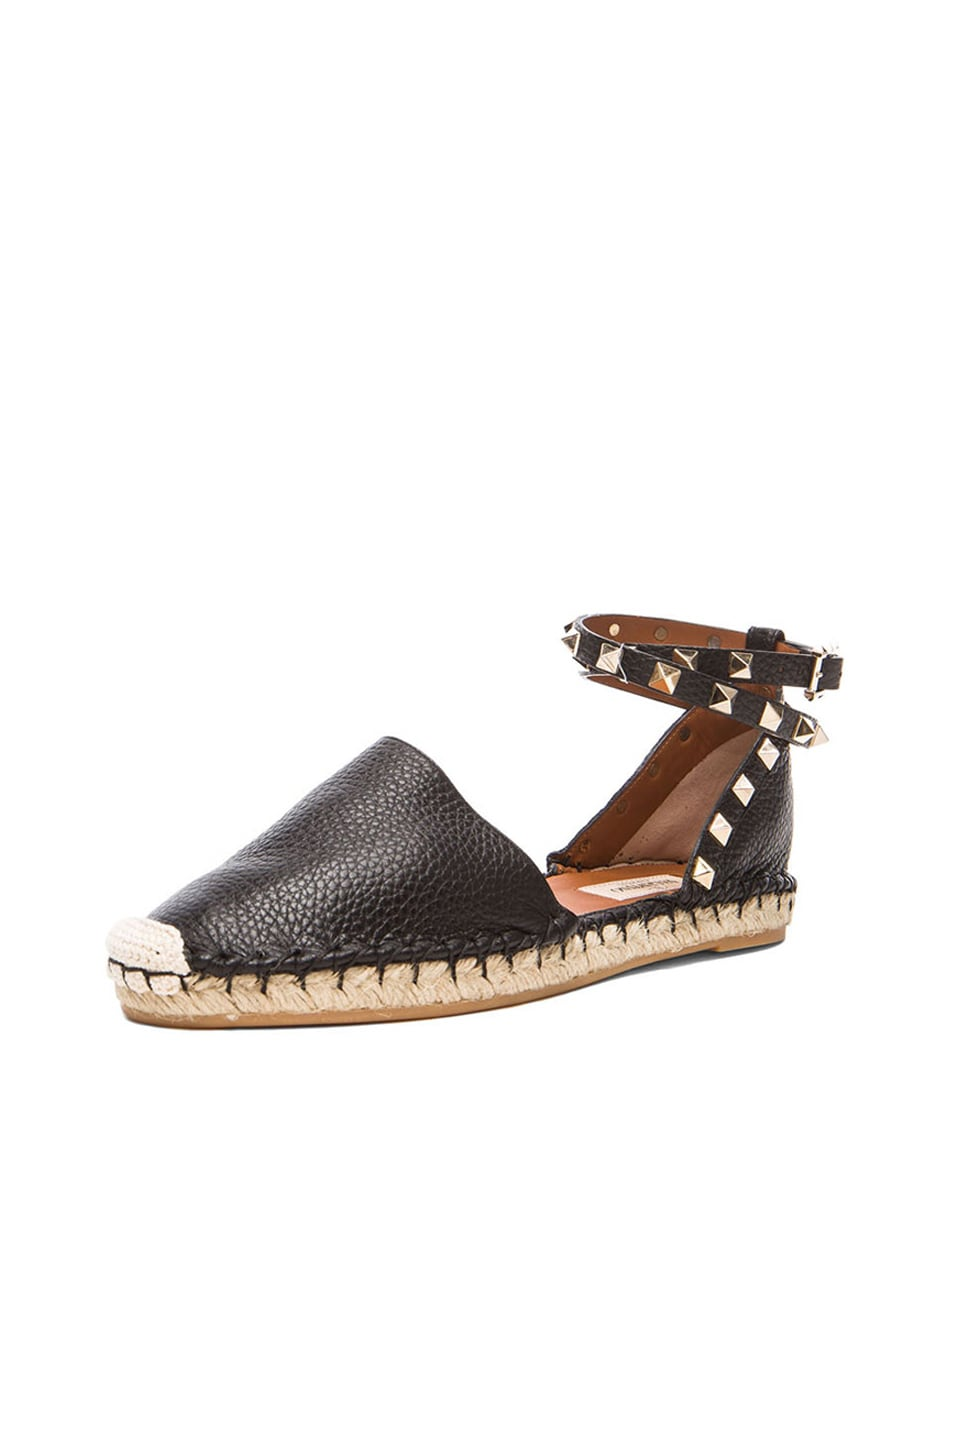 Image 2 of Valentino Rockstud Double Flat Leather Espadrilles in Black